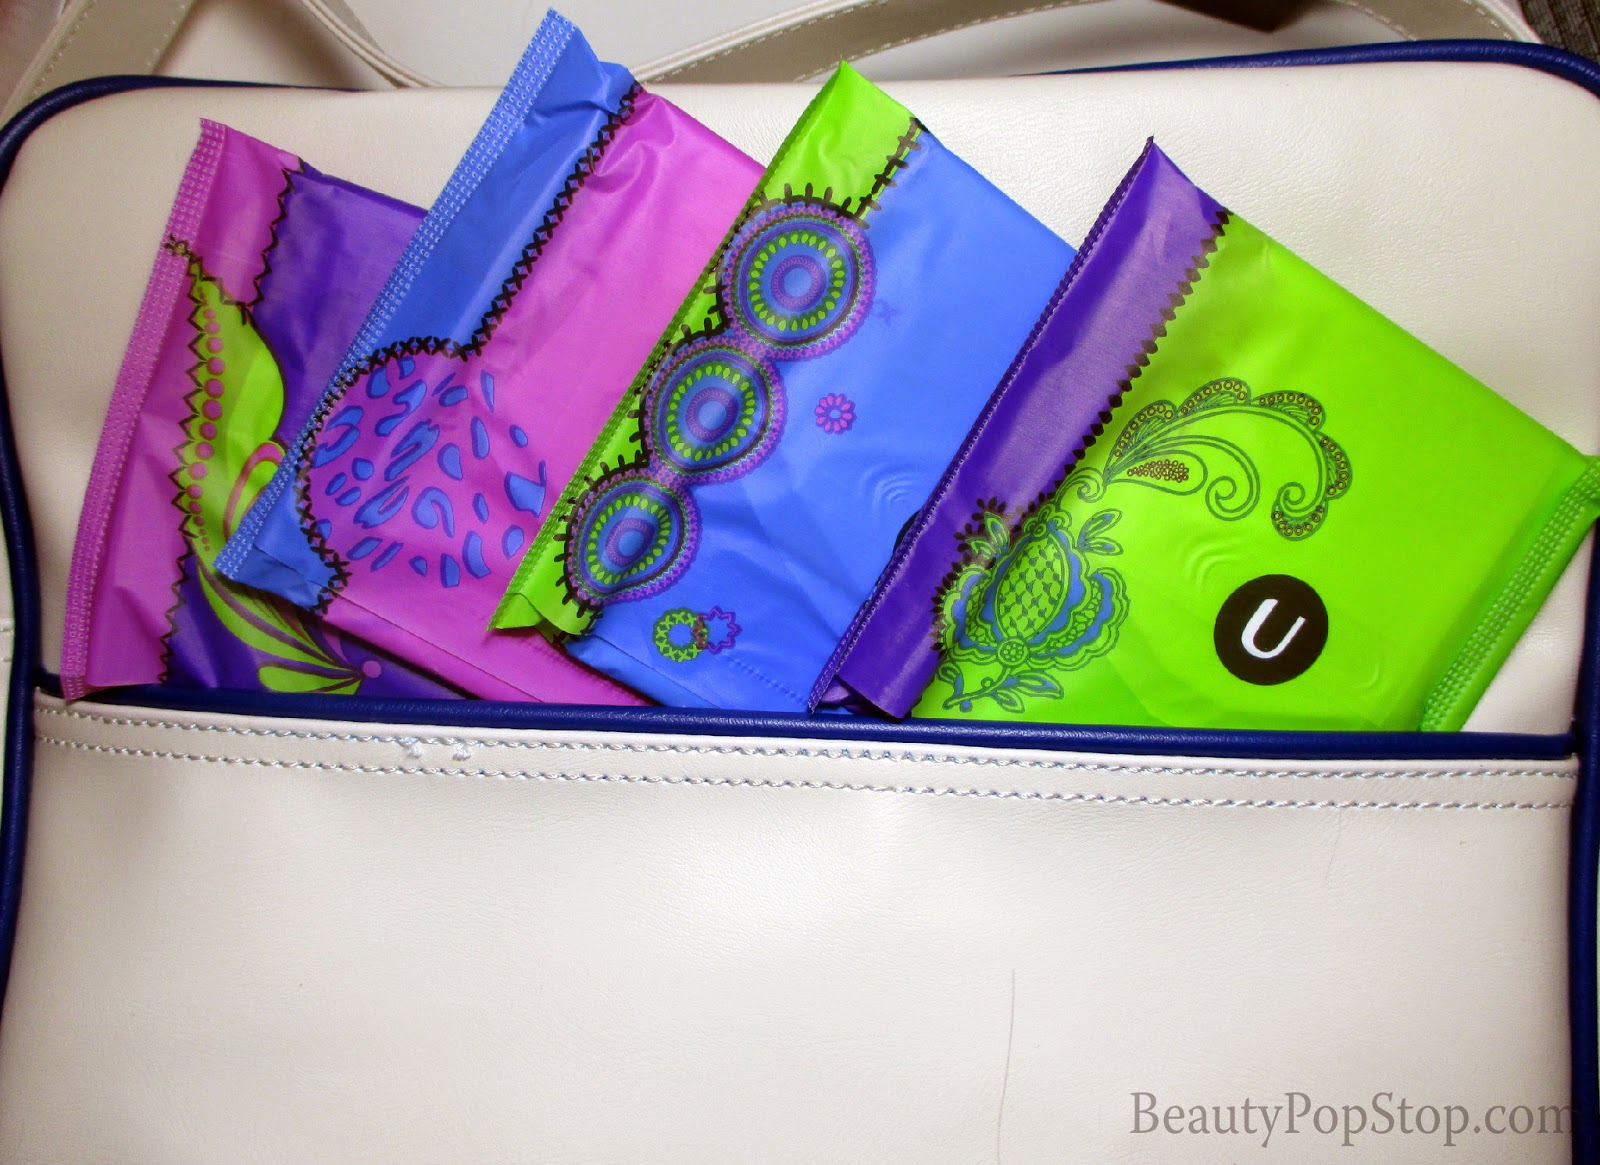 u by kotex cleanwater pads with 3d capture core travel essentials free samples